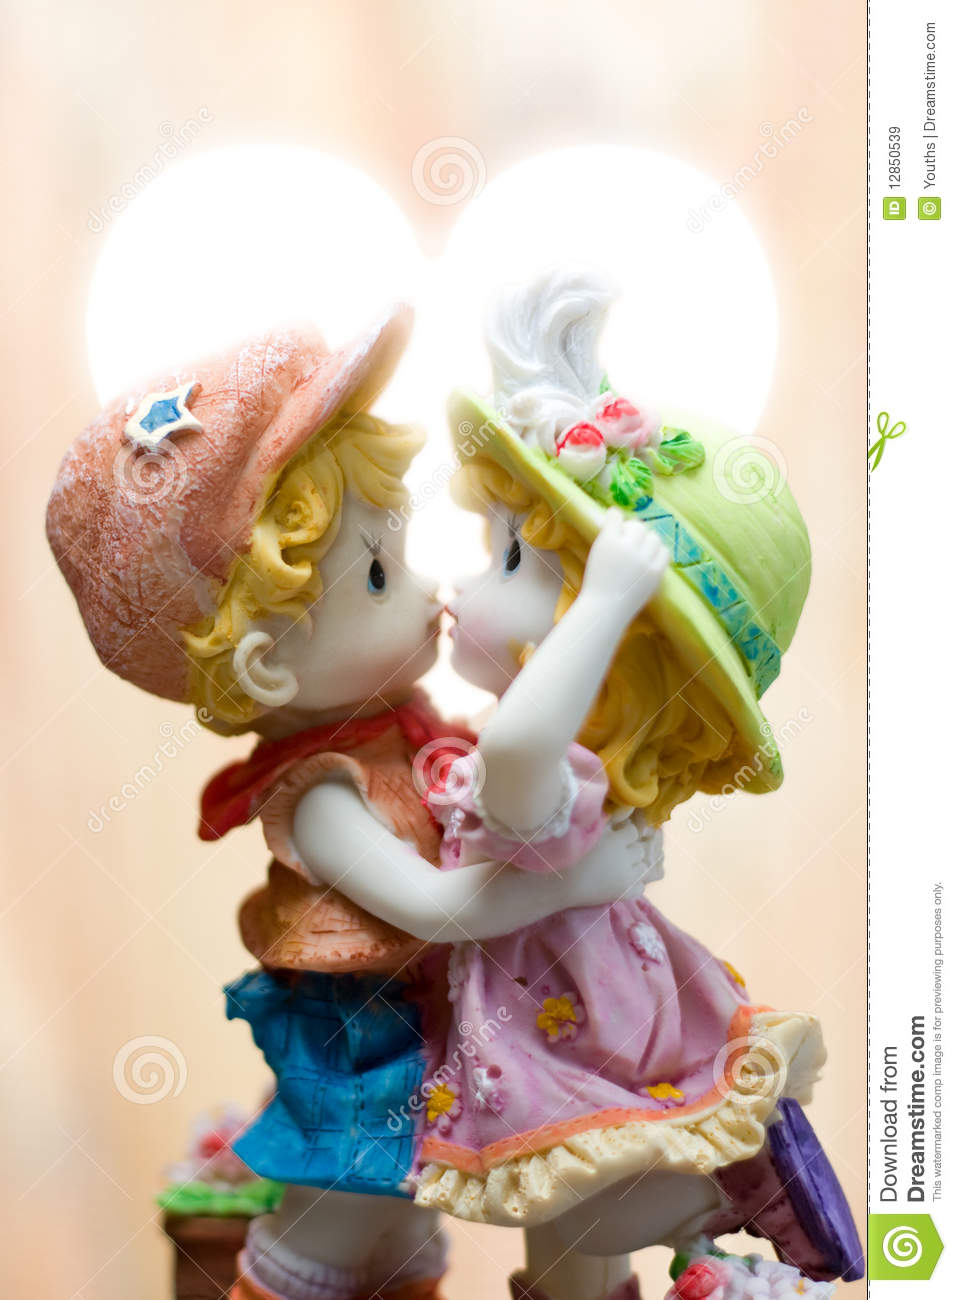 Sweet Wallpaper Boy And Girl Lovers Dolls Isolated On White Background Royalty Free